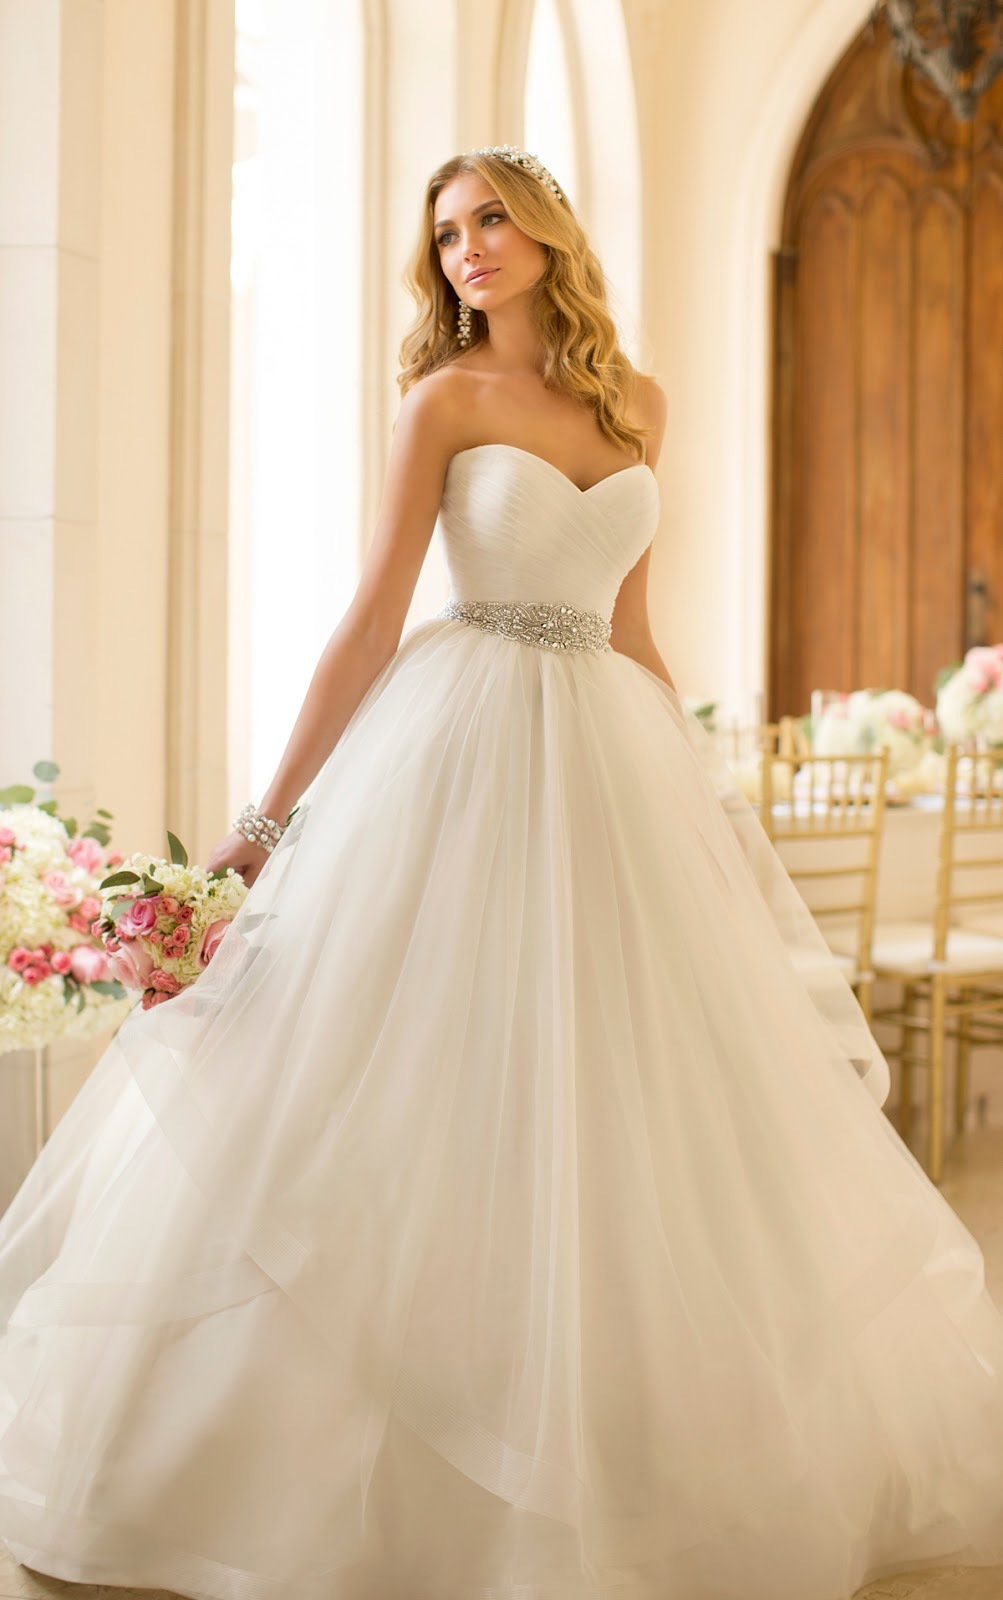 Wedding dresses by DressesFirms.co.uk